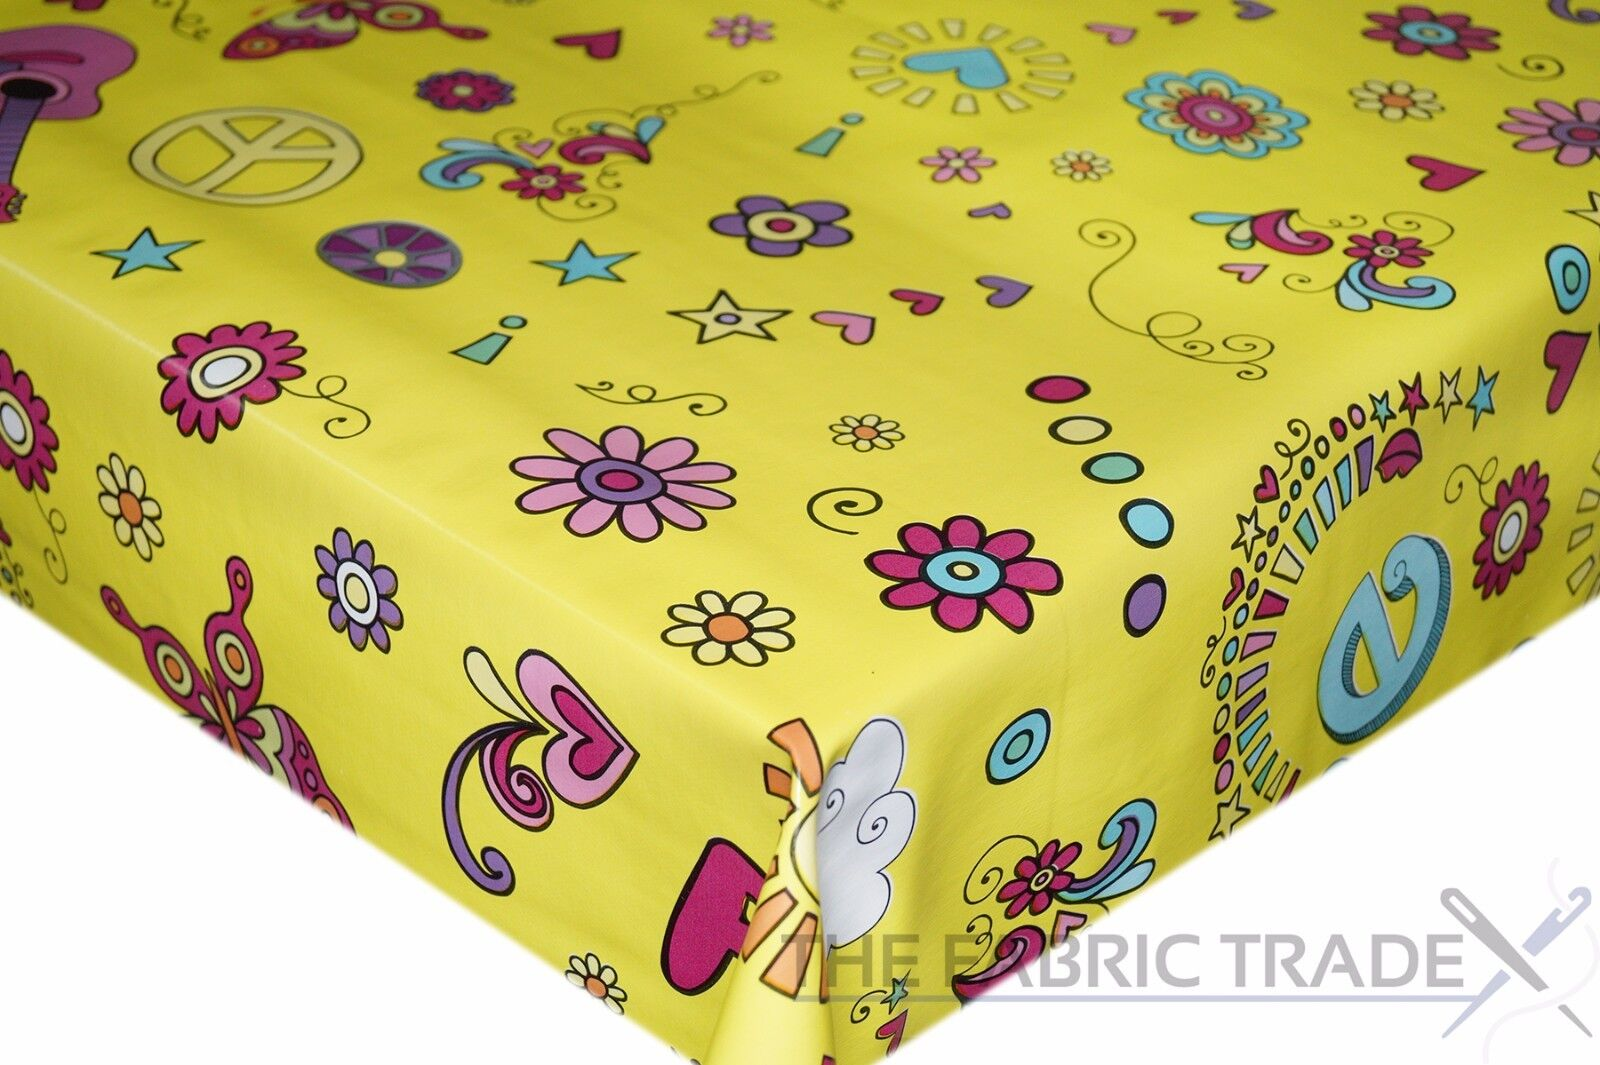 Comme neuf Green Polka Dot PVC TABLECLOTH Vinyle OILCLOTH KITCHEN DINING TABLE